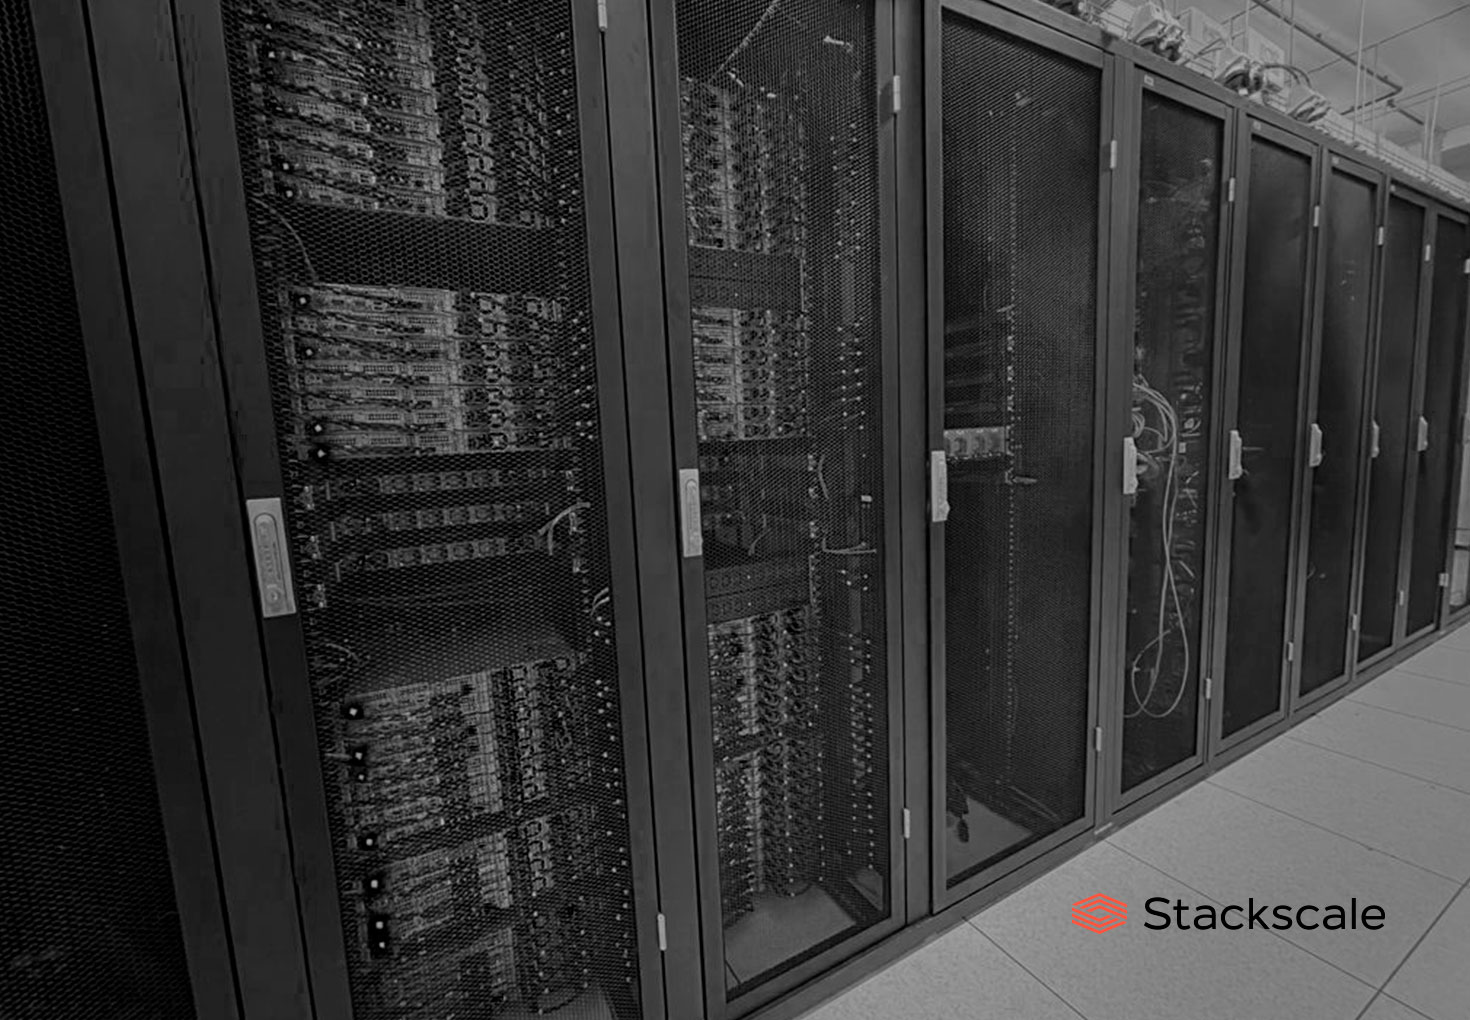 what's a data center or Internet datacenter